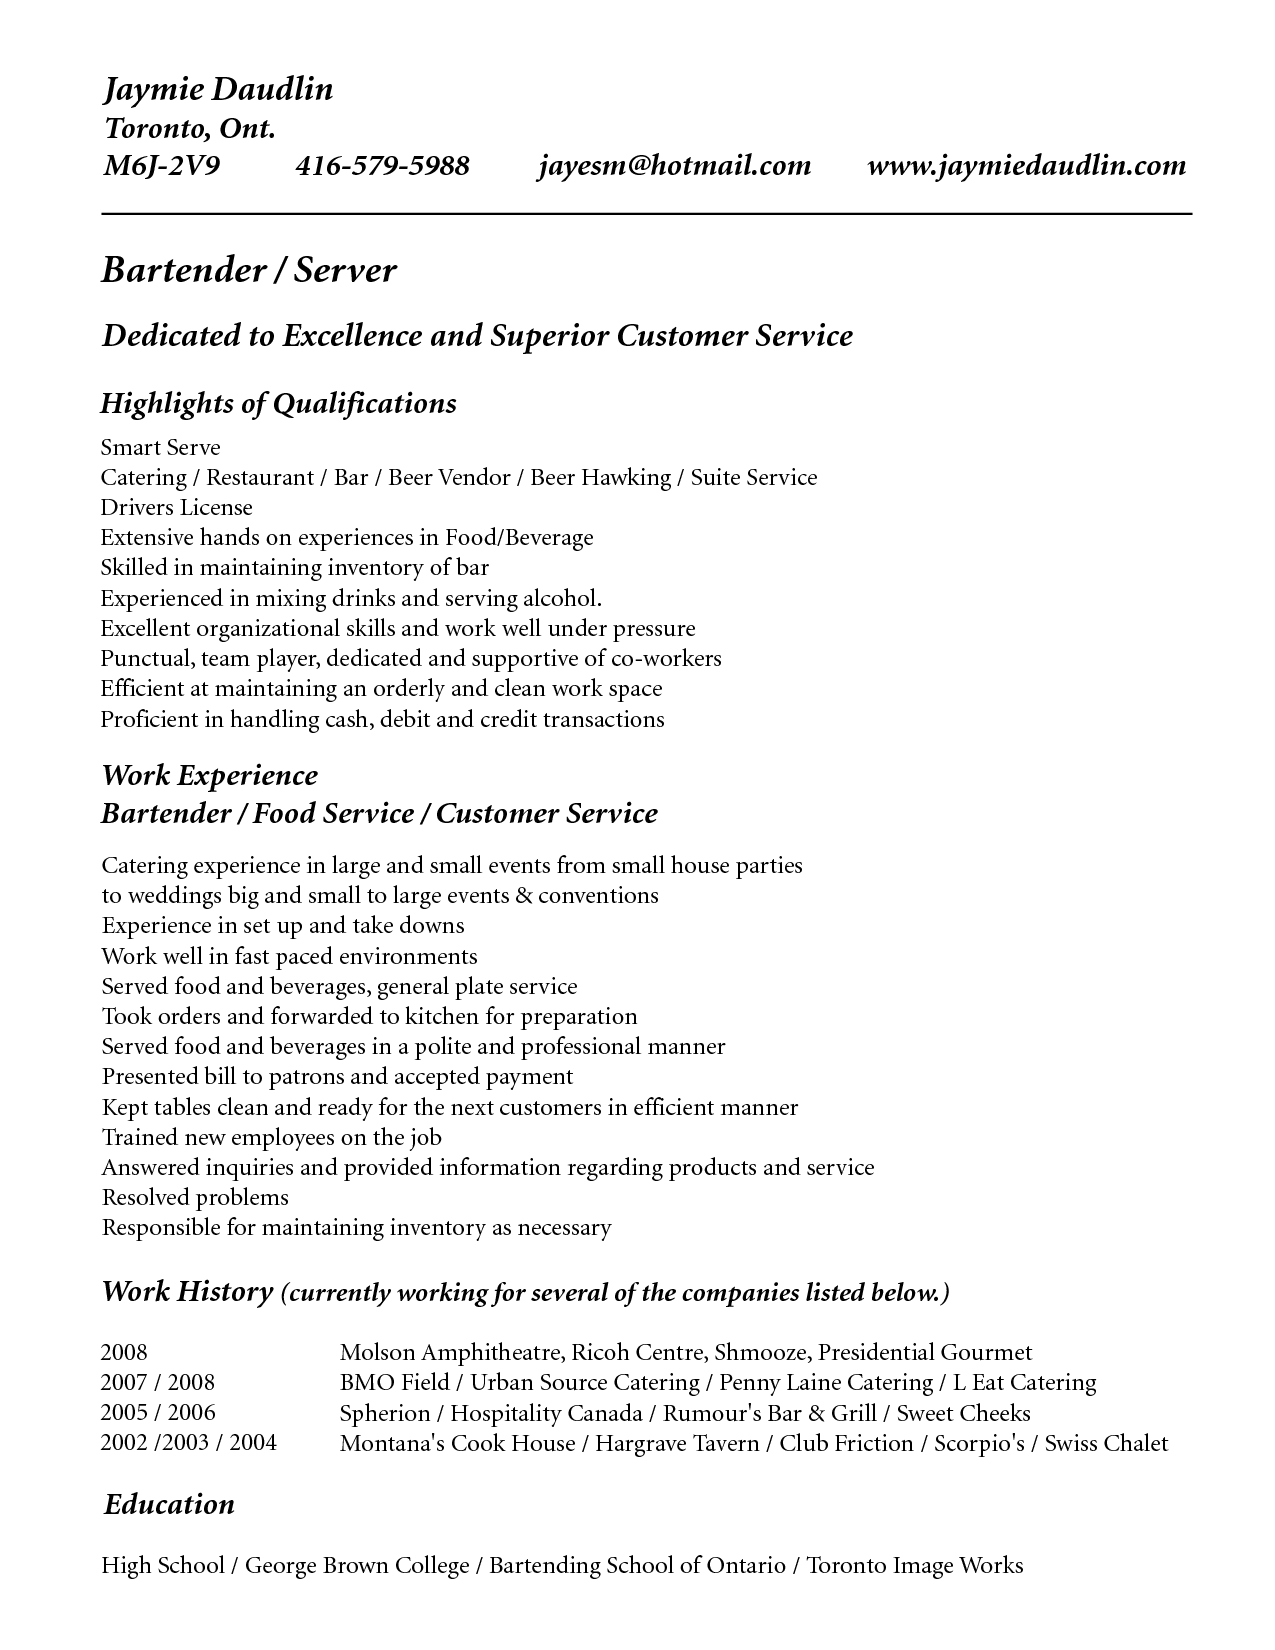 Wonderful We Already Knew That We Must Put Our Educational Information To Any Resume,  Including The Bartenders Resume. When You Make Your Bartender Resume, ... Throughout Bartender Resume Sample